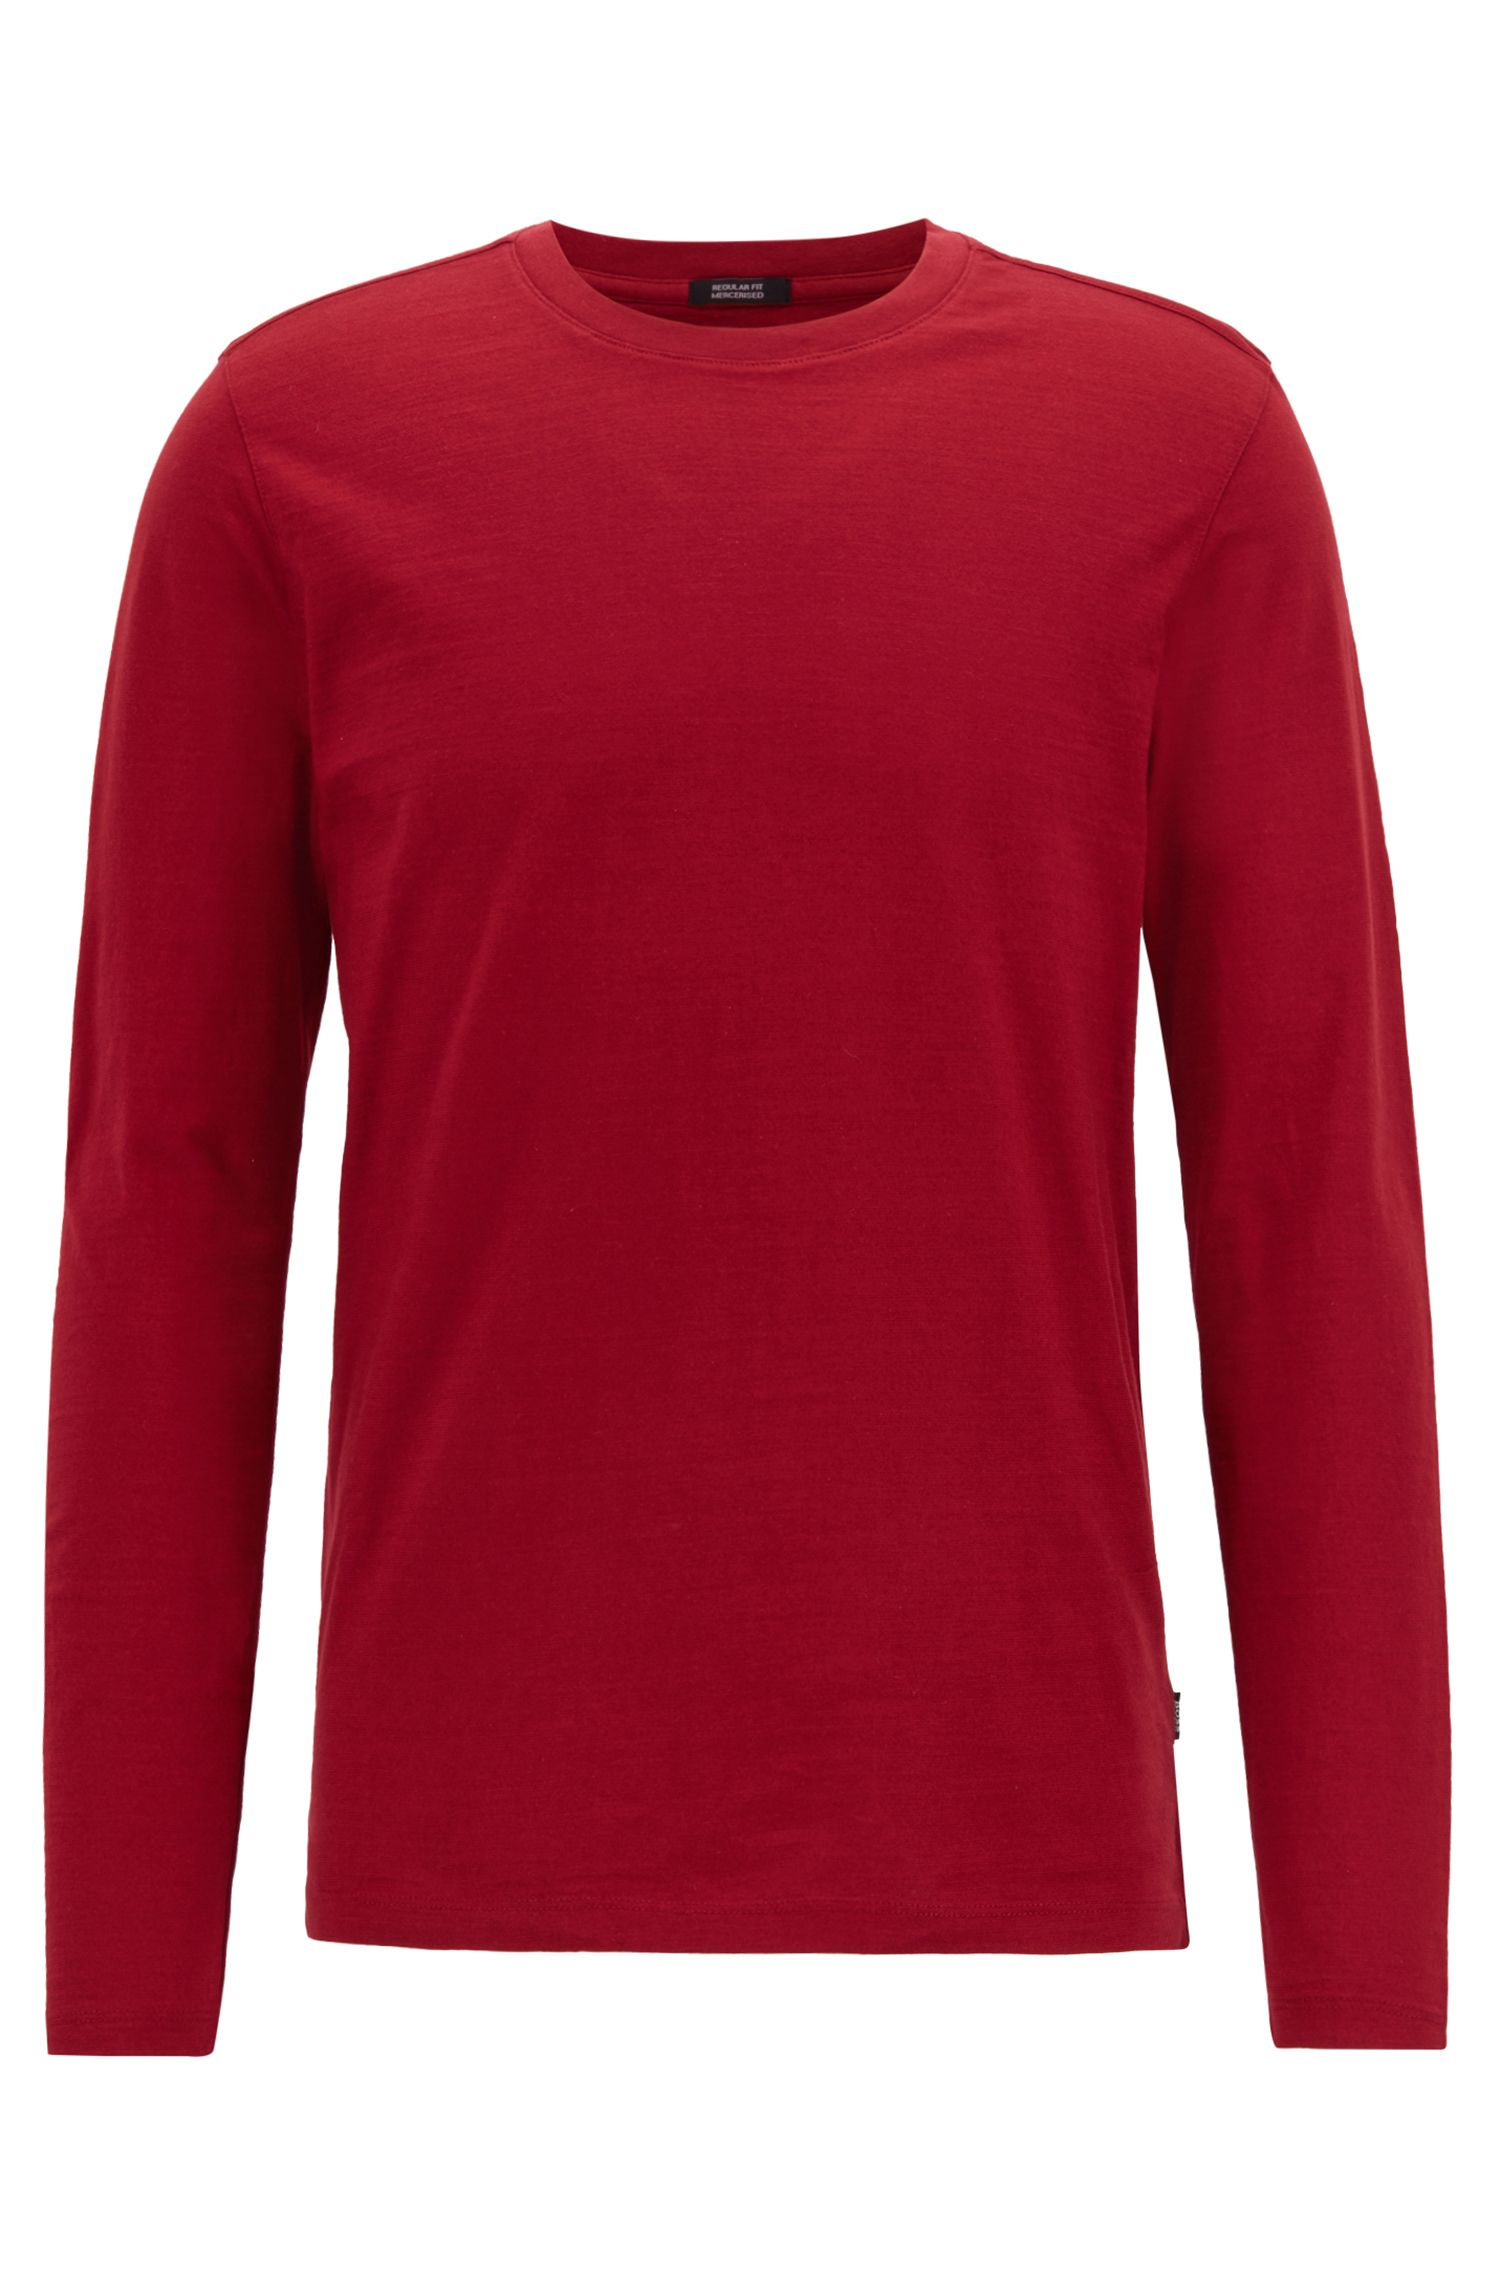 Camiseta regular fit de manga larga en algodón flameado mercerizado, Rojo oscuro